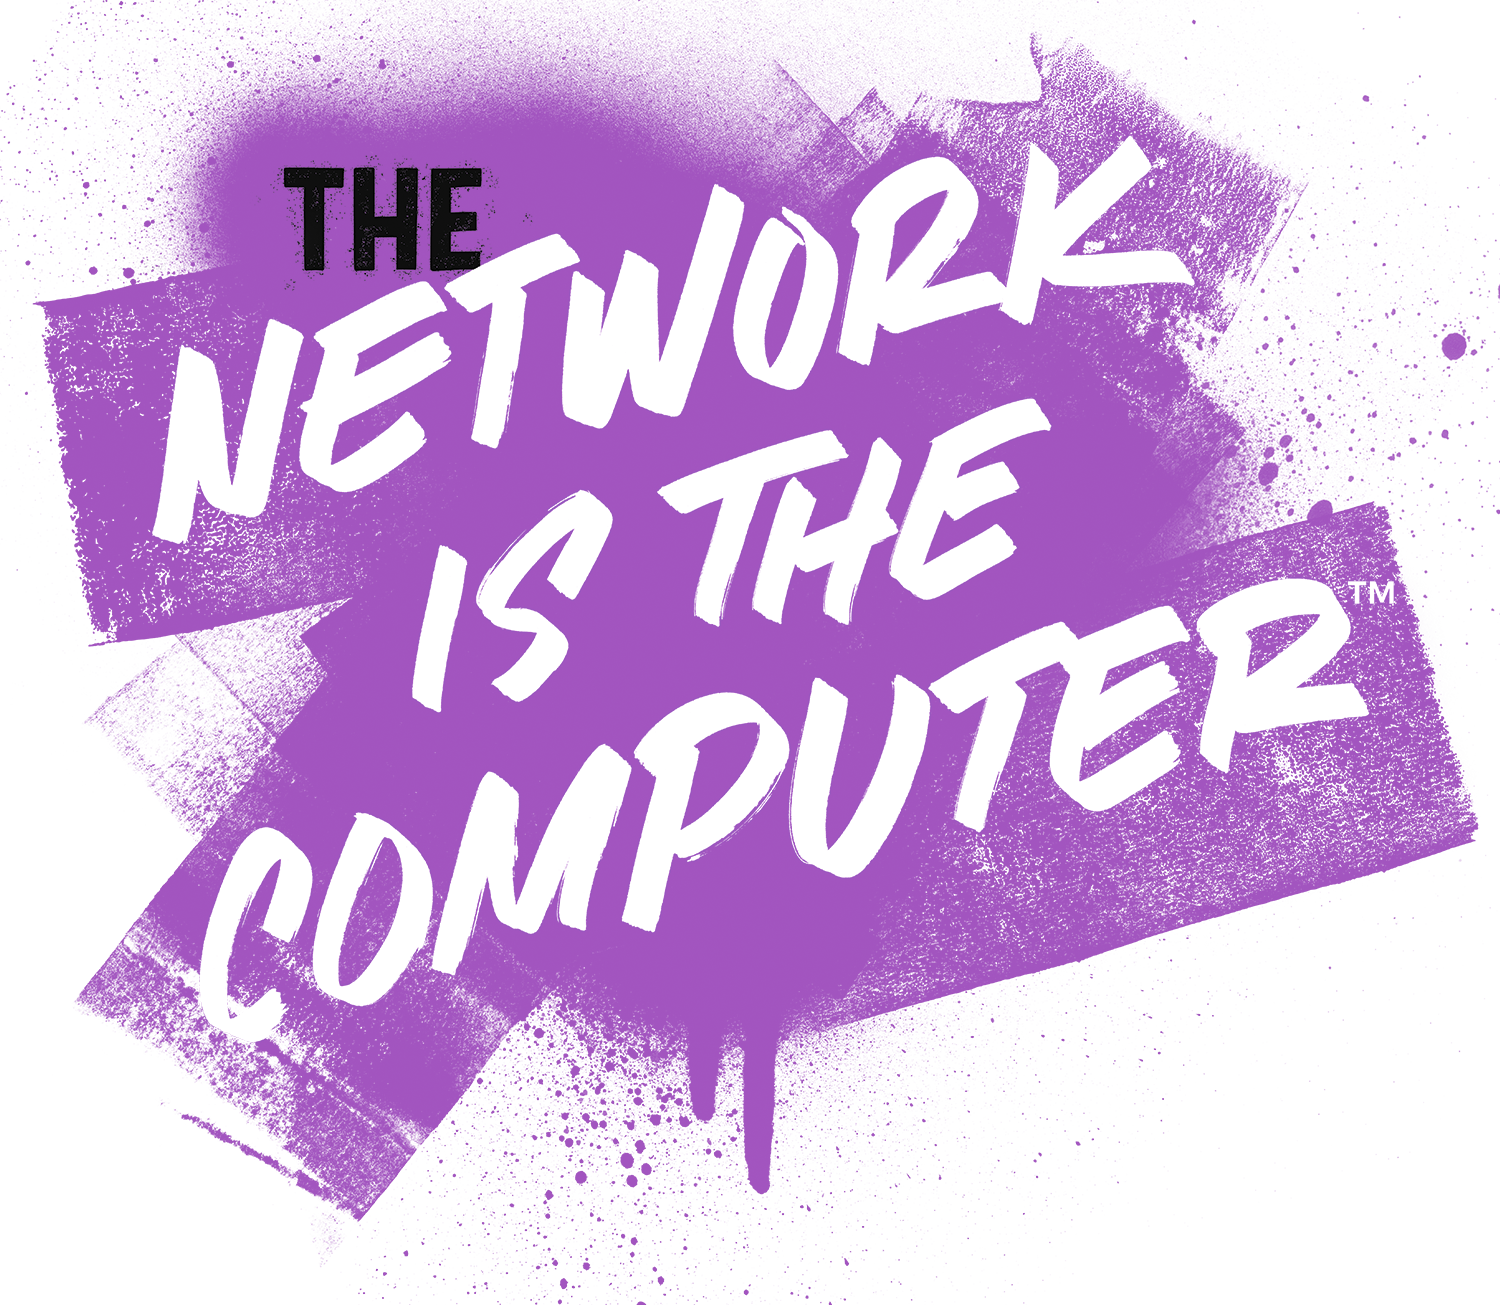 The Network is the Computer: A Conversation with Greg Papadopoulos